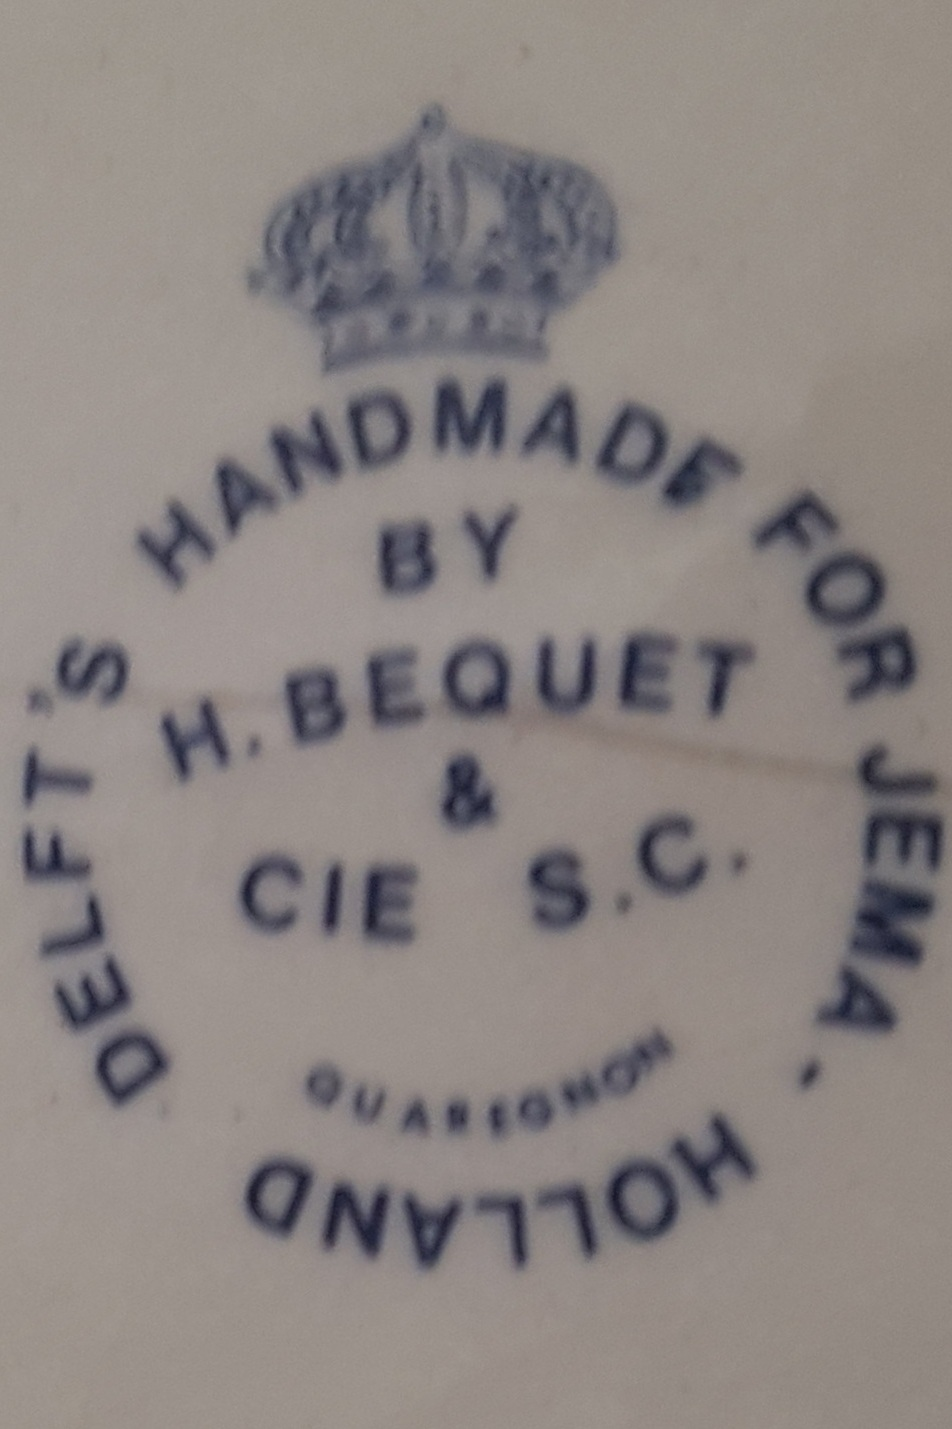 Stamp+of+H+Bequet+for+jema+Holland